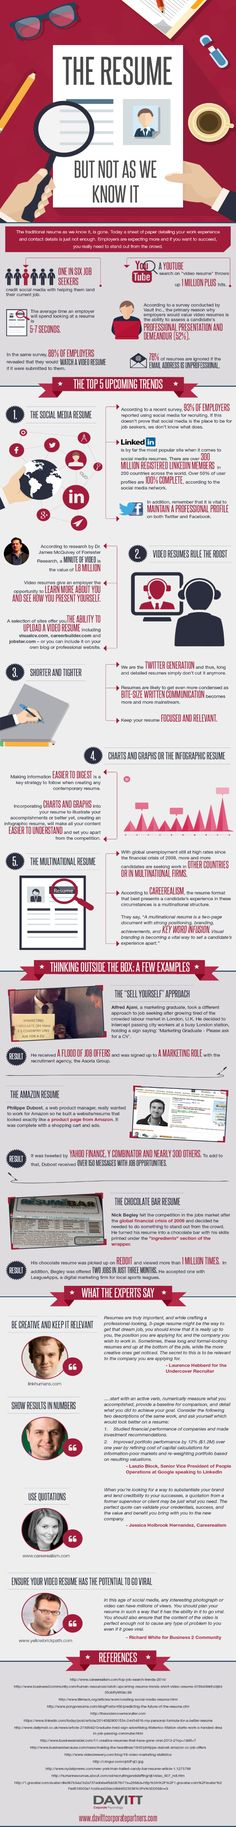 The resume - it's not the same as it used to be!   http://www.youtern.com/thesavvyintern/index.php/2015/04/29/the-social-age-resume-stand-out-from-the-crowd-infographic/?utm_medium=twitter&utm_source=twitterfeed